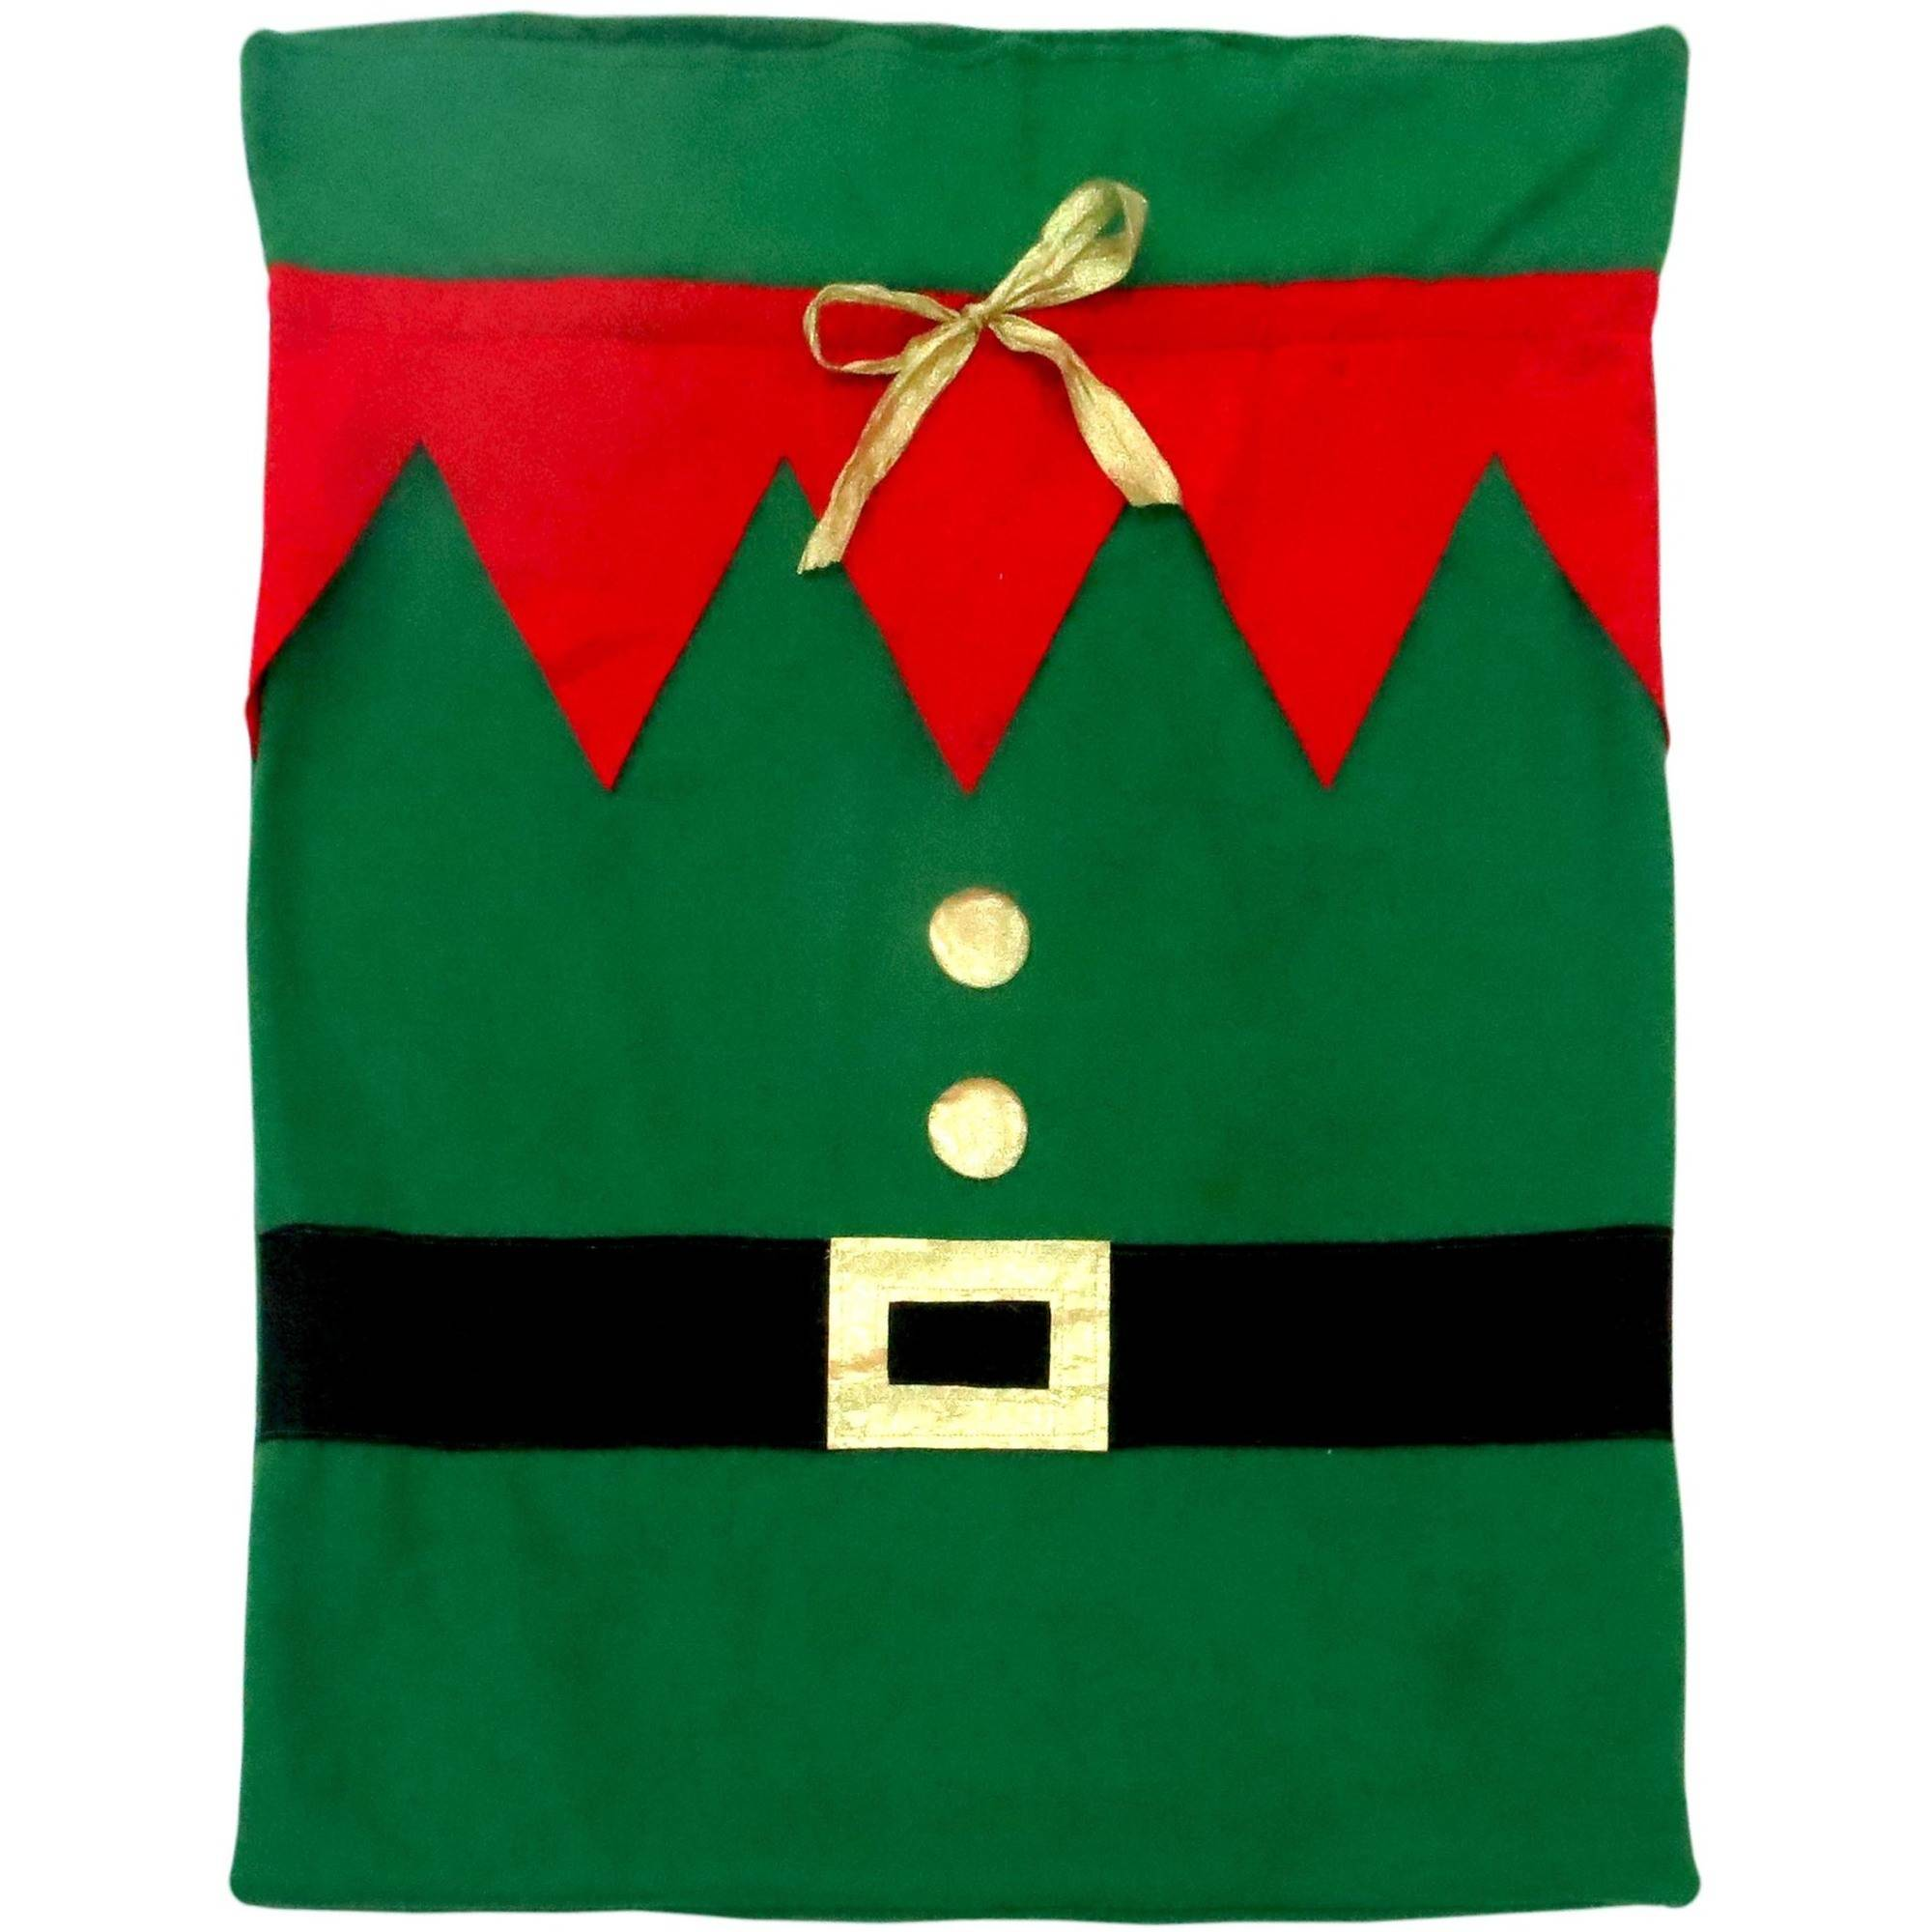 "Holiday Time 36"" by 28"" Christmas Festive Fabric Gift Bag - Green Elf"